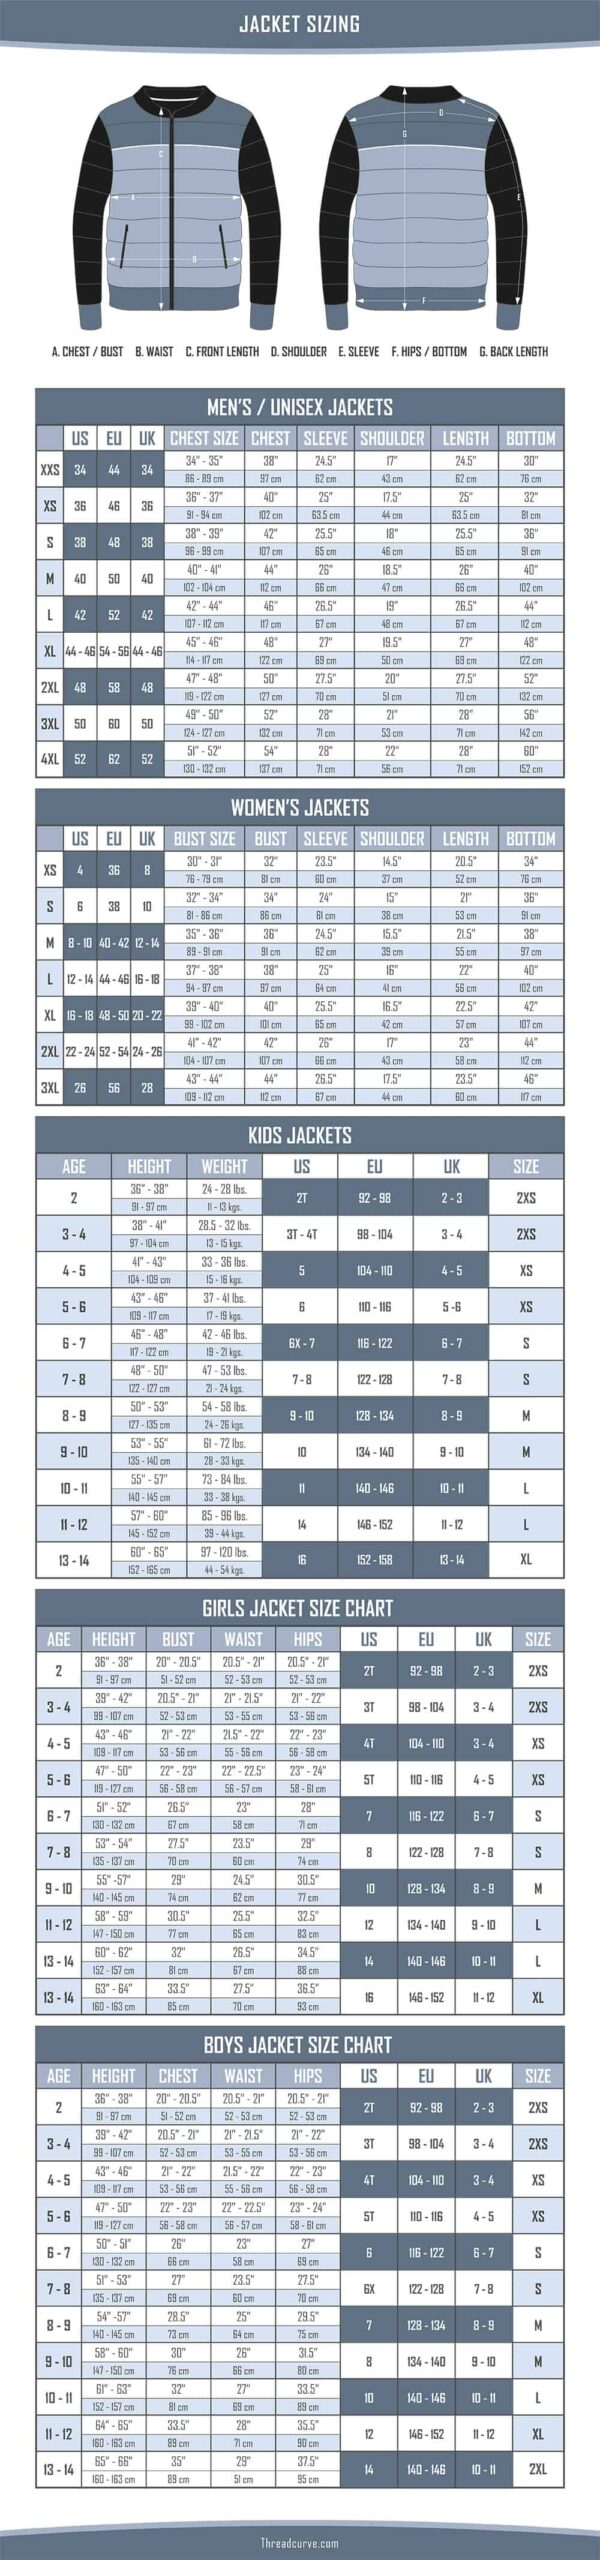 This is the Jacket Sizing Chart.